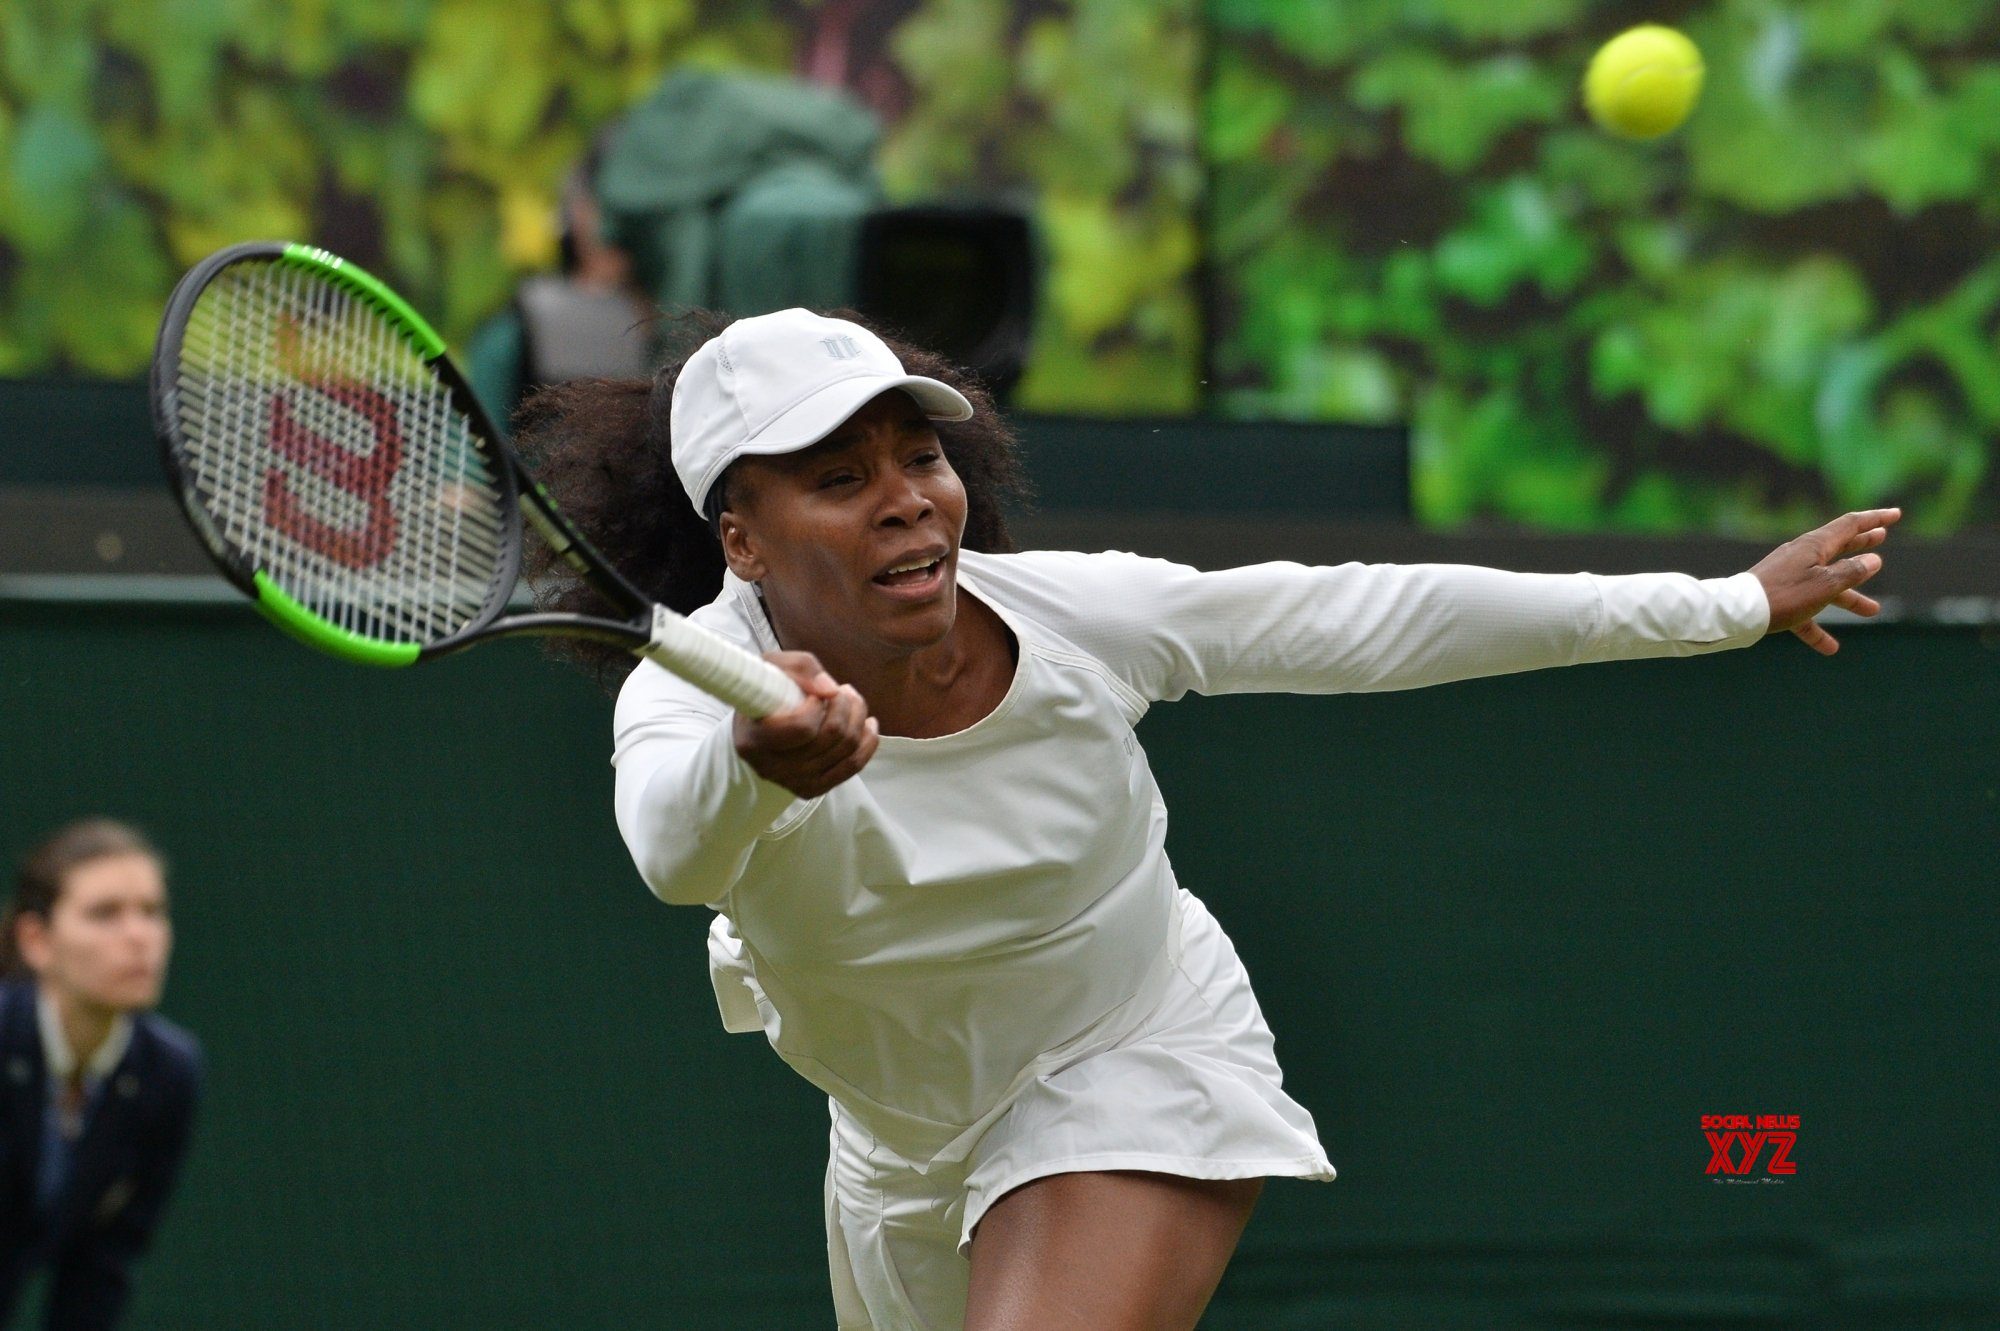 Venus knocked out of Wimbledon by 15-year-old